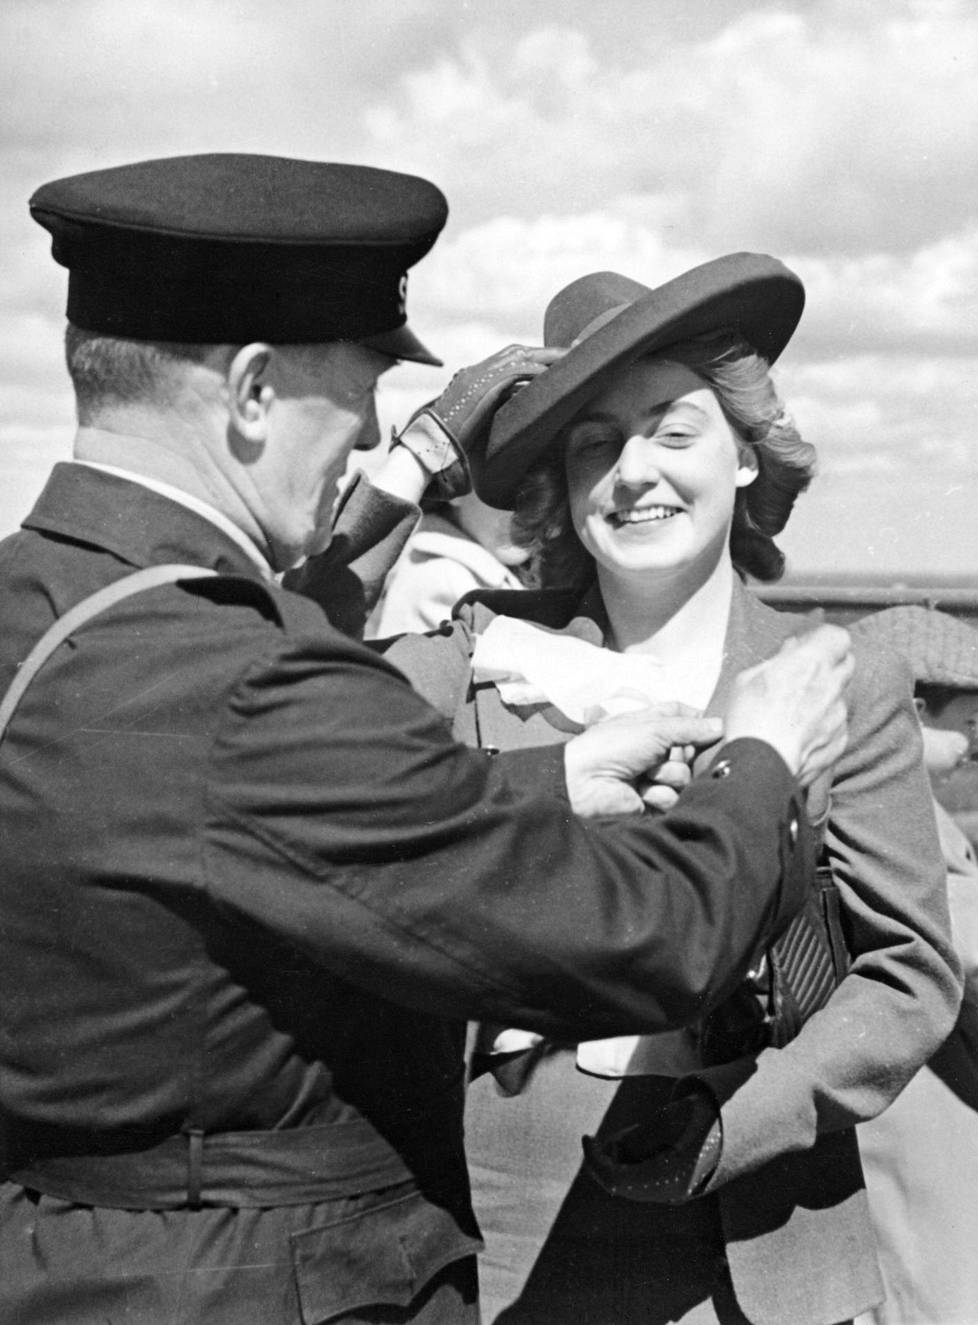 Albin Stenroos attaches a golden tower badge to the costume of Liisa Heilimo from Vyborg.  Heilimo was 100,000 visitors to the Olympic Stadium tower on May 21, 1939.